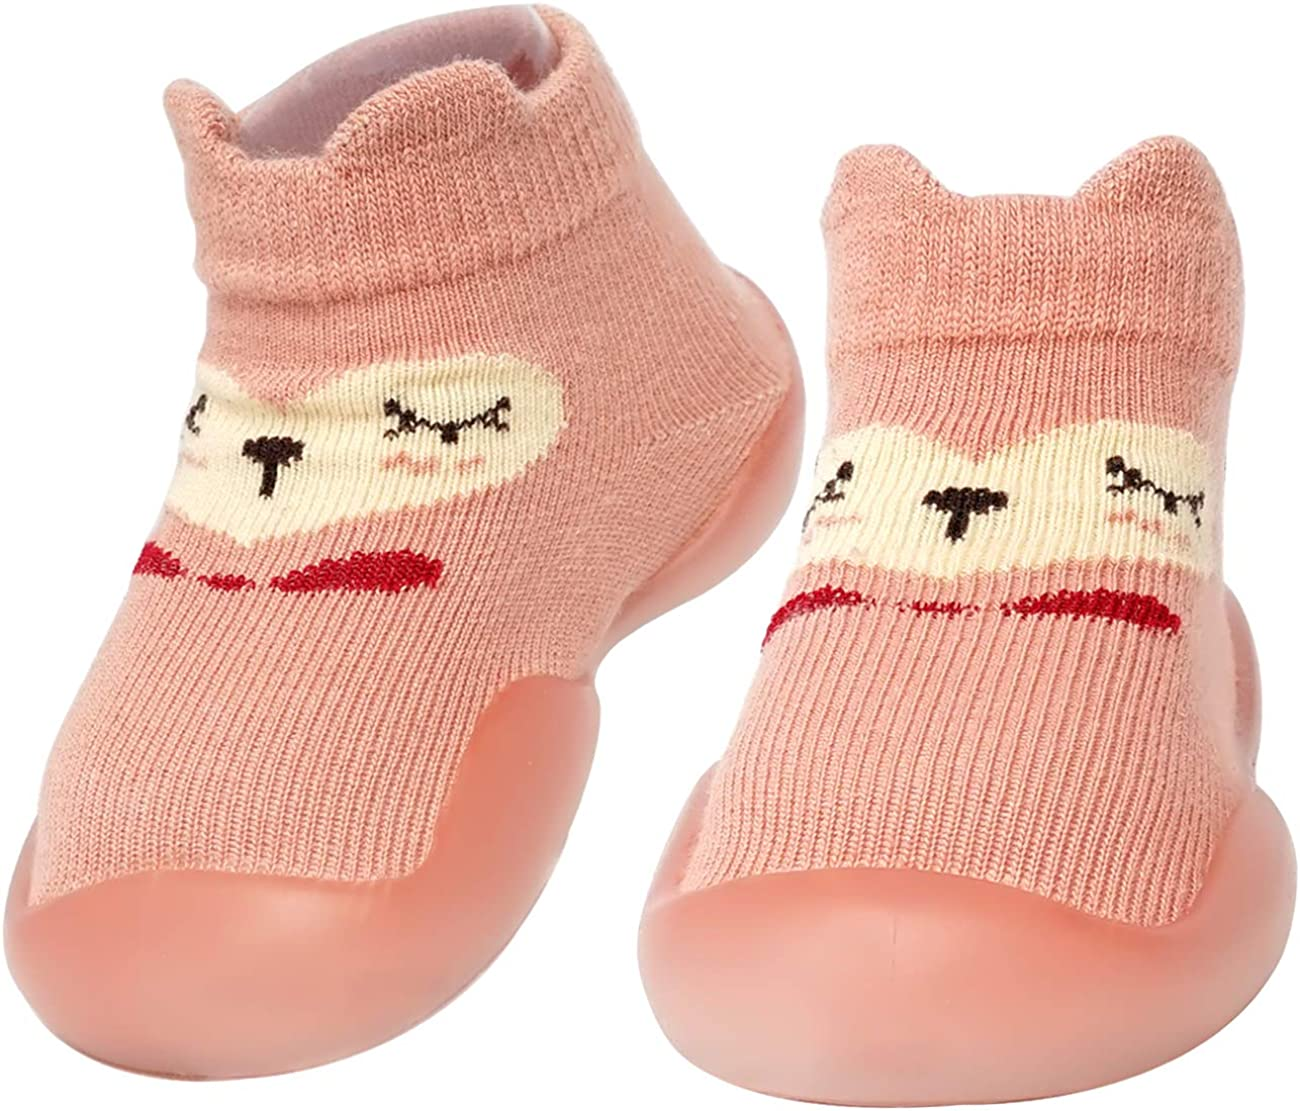 WEAPRIL Baby Toddler Sock Shoes Sole Non-Skid TPE Outdoor Over item handling ☆ Indoor Max 56% OFF